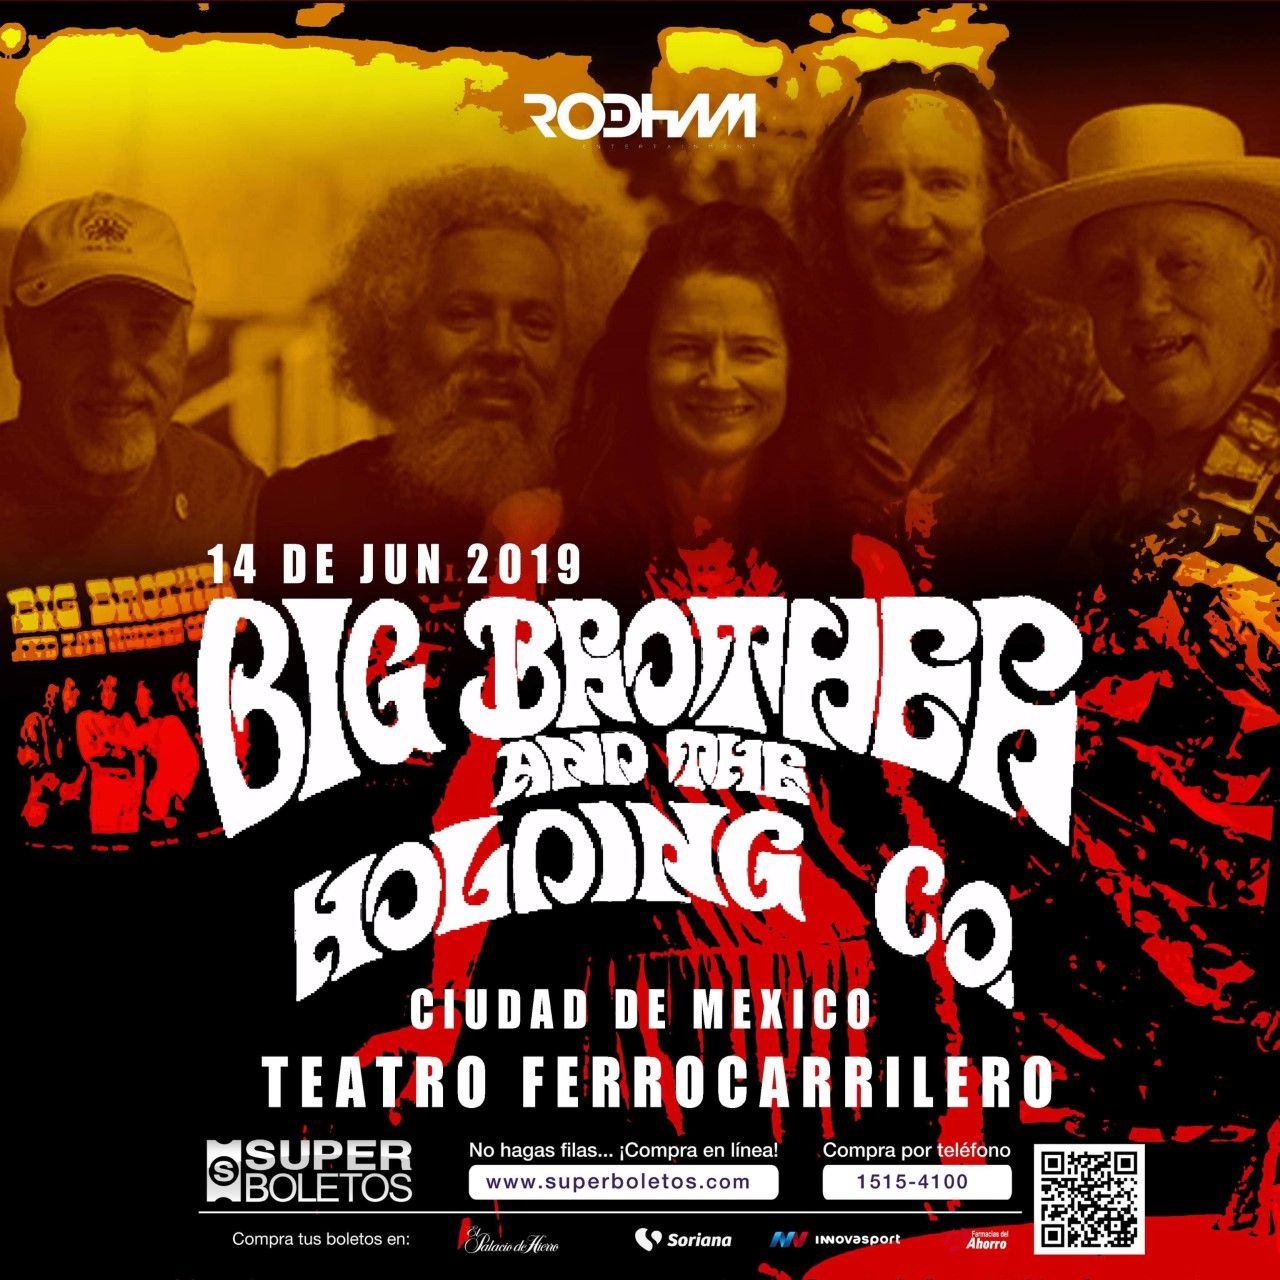 Se presenta banda Big Brother Holding Co.